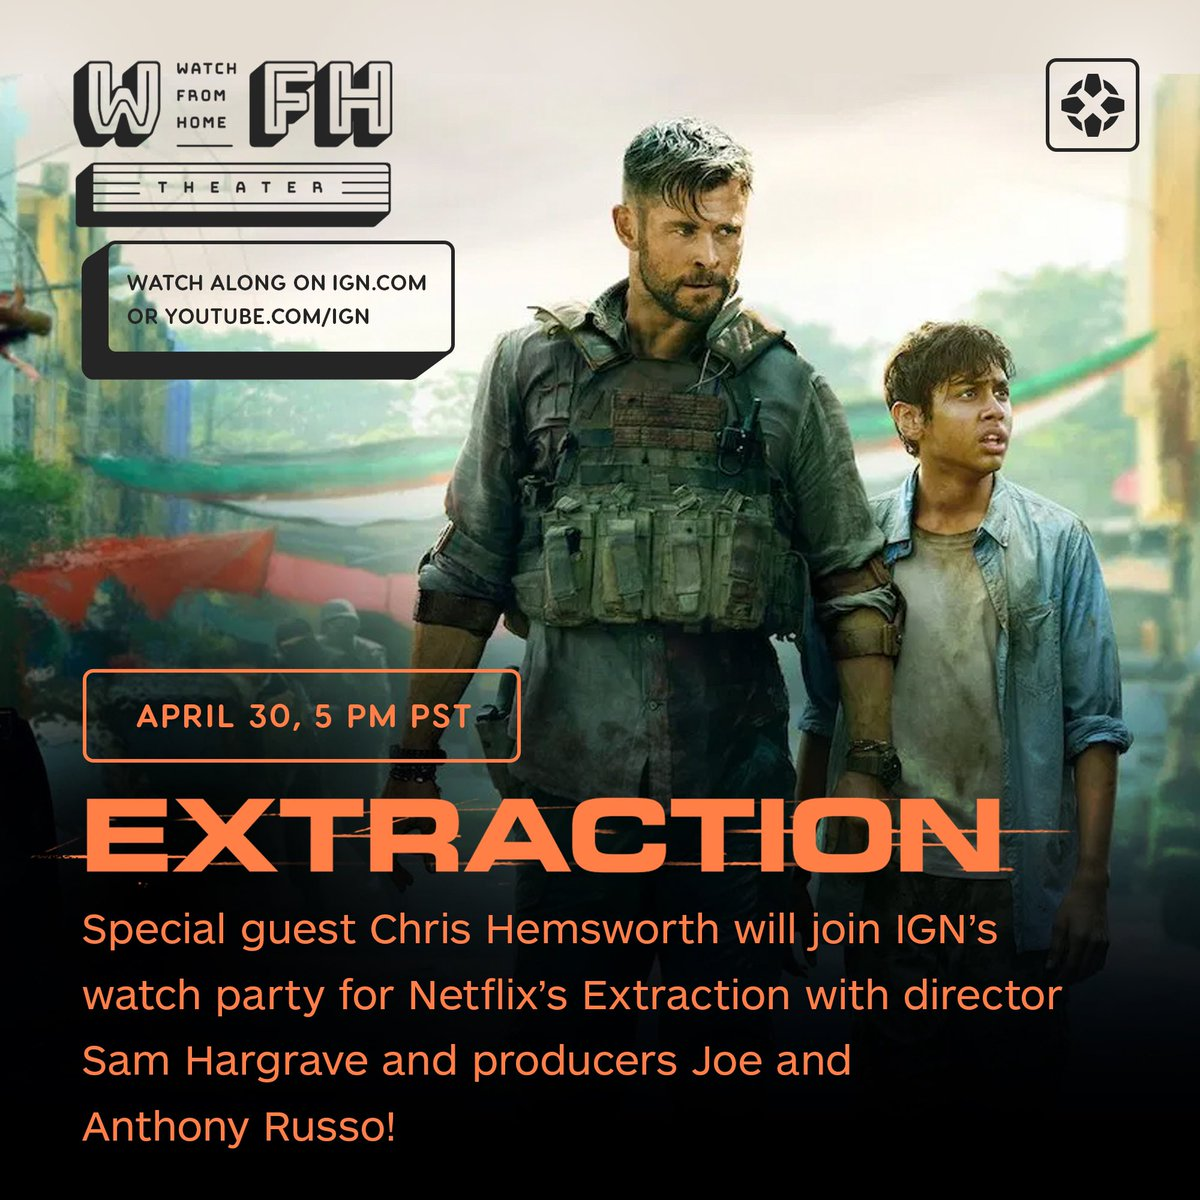 Join us tomorrow 4/30 at 5 pm pst for @IGN's Watch From Home Theatre presentation of #Extraction with special guests @chrishemsworth, the @Russo_Brothers, & director Sam Hargrave! Follow along on https://t.co/3NHvveQqgS or https://t.co/tSouqJU9PJ! https://t.co/pWhGlRdcF4